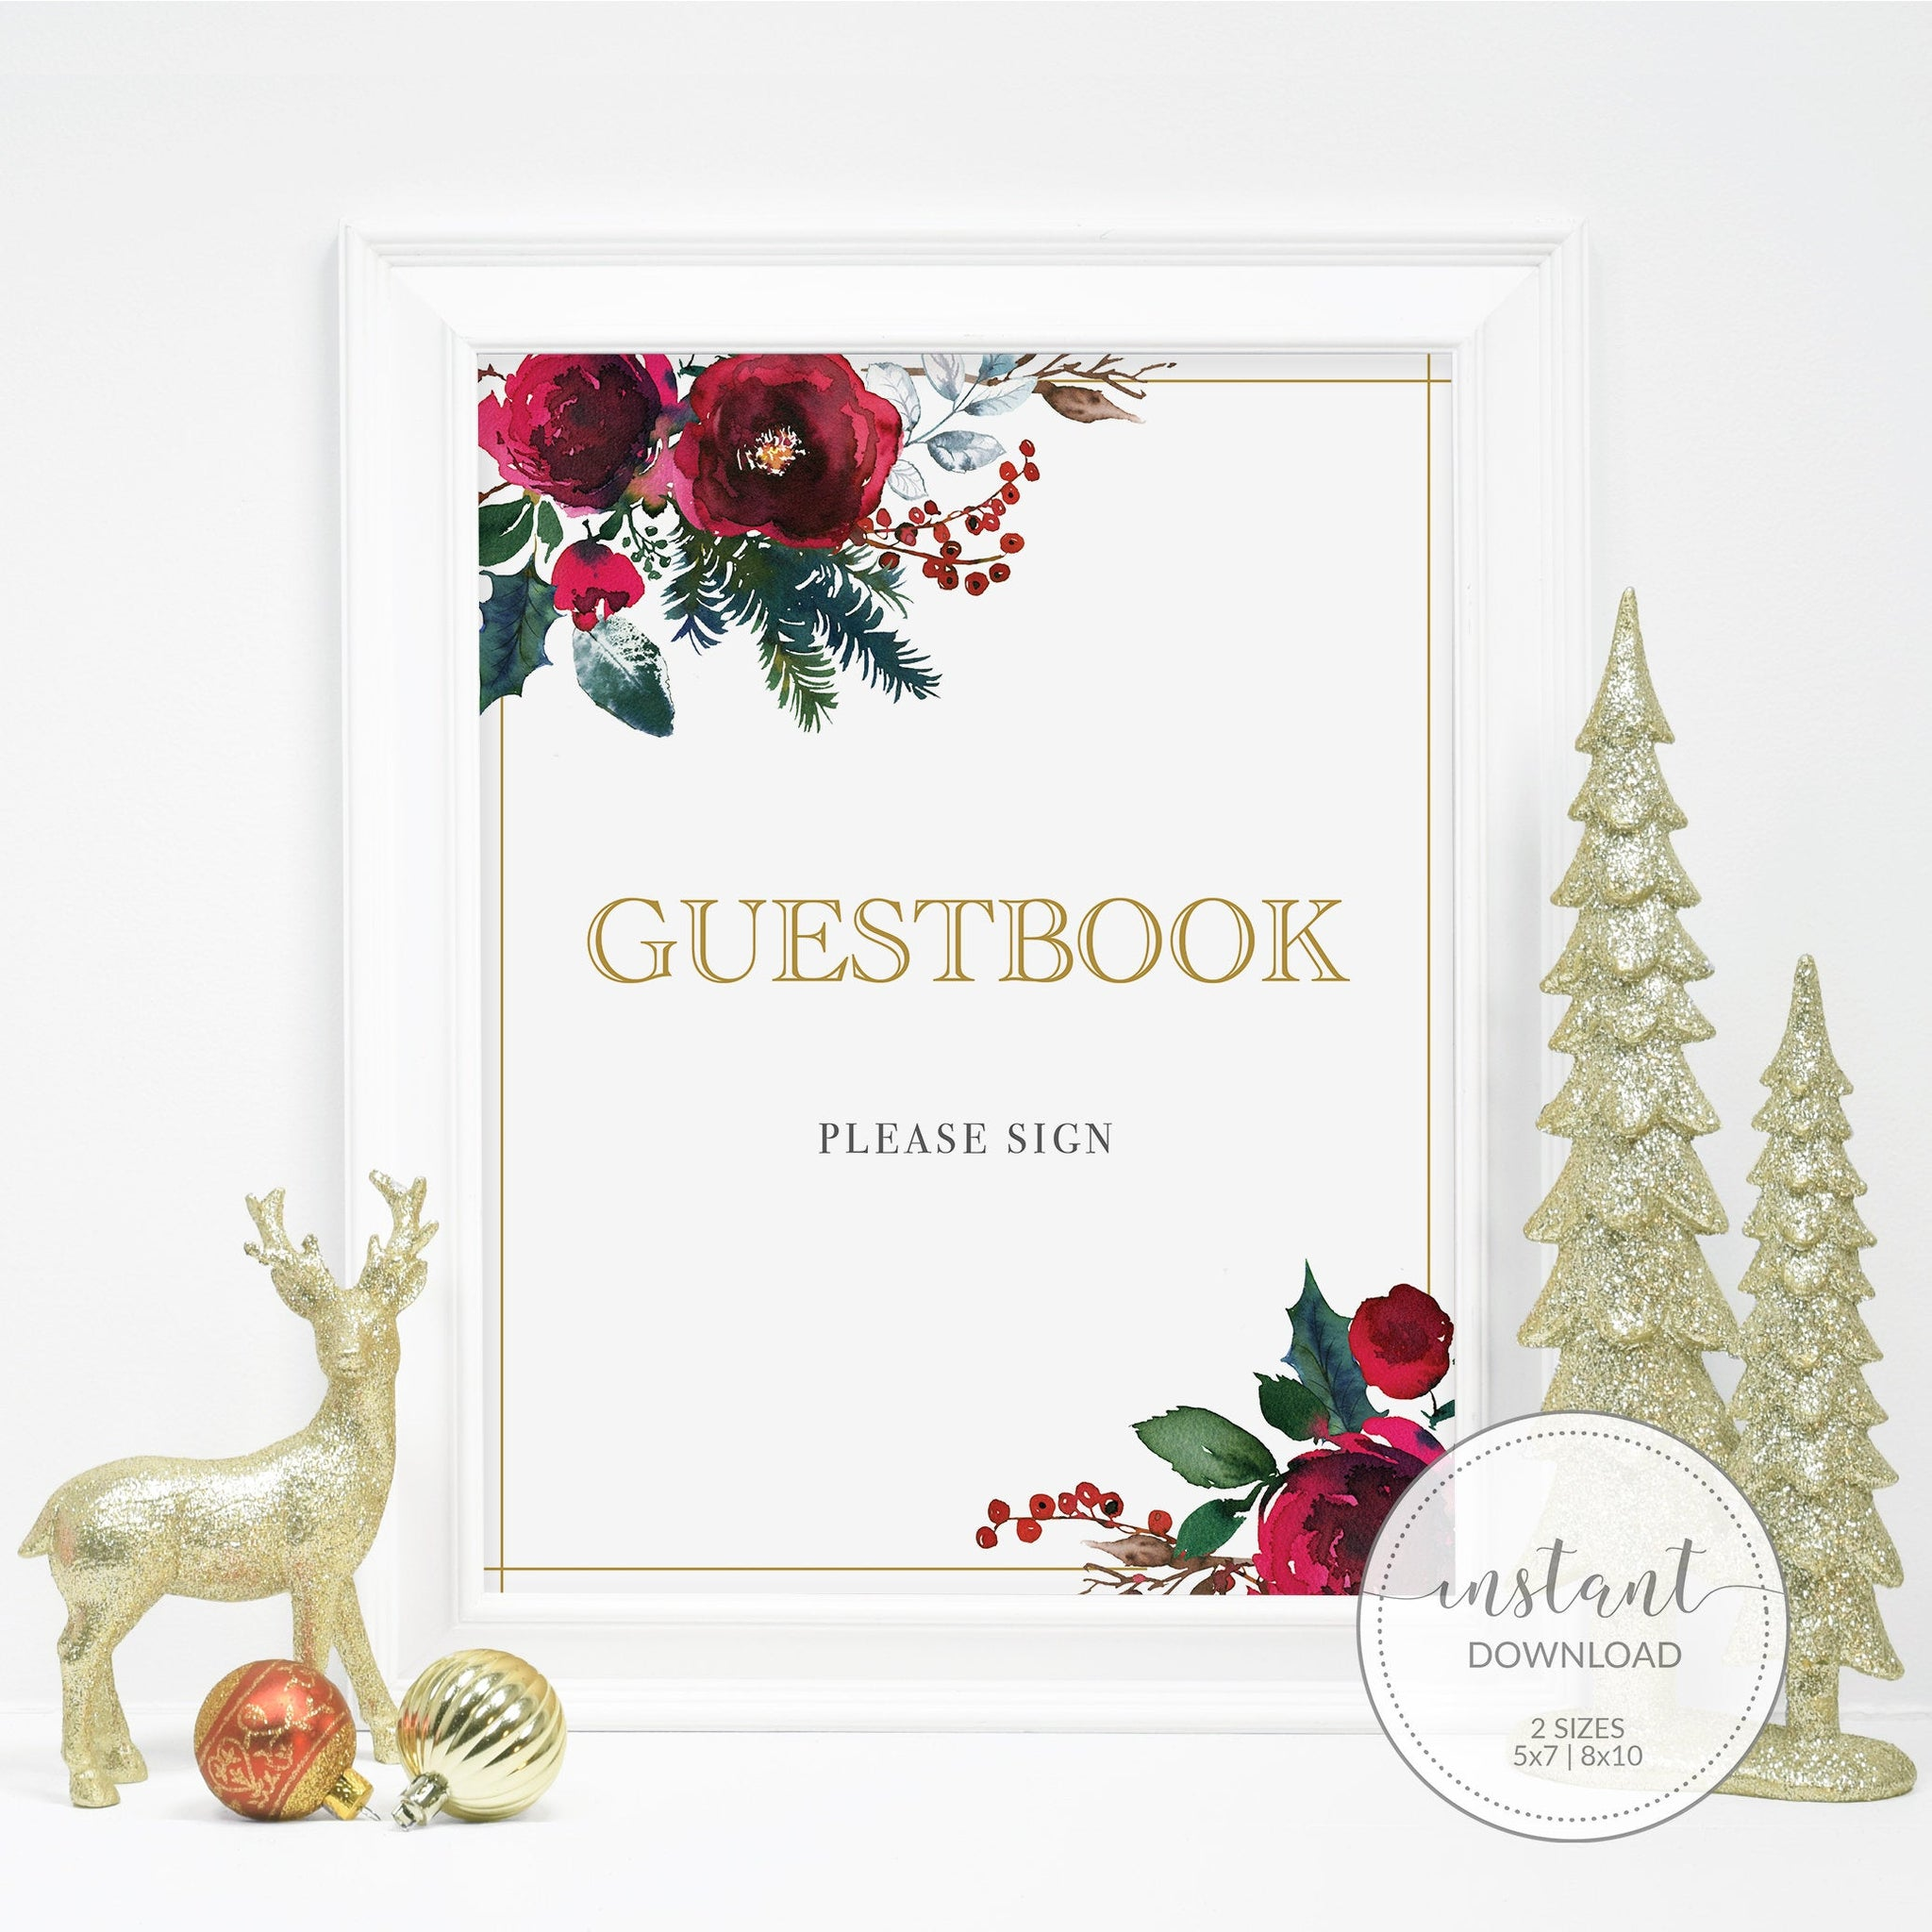 Christmas Wedding Guestbook Sign Printable, Christmas Bridal Shower Decorations, Christmas Baby Shower Decor, INSTANT DOWNLOAD - CG100 - @PlumPolkaDot